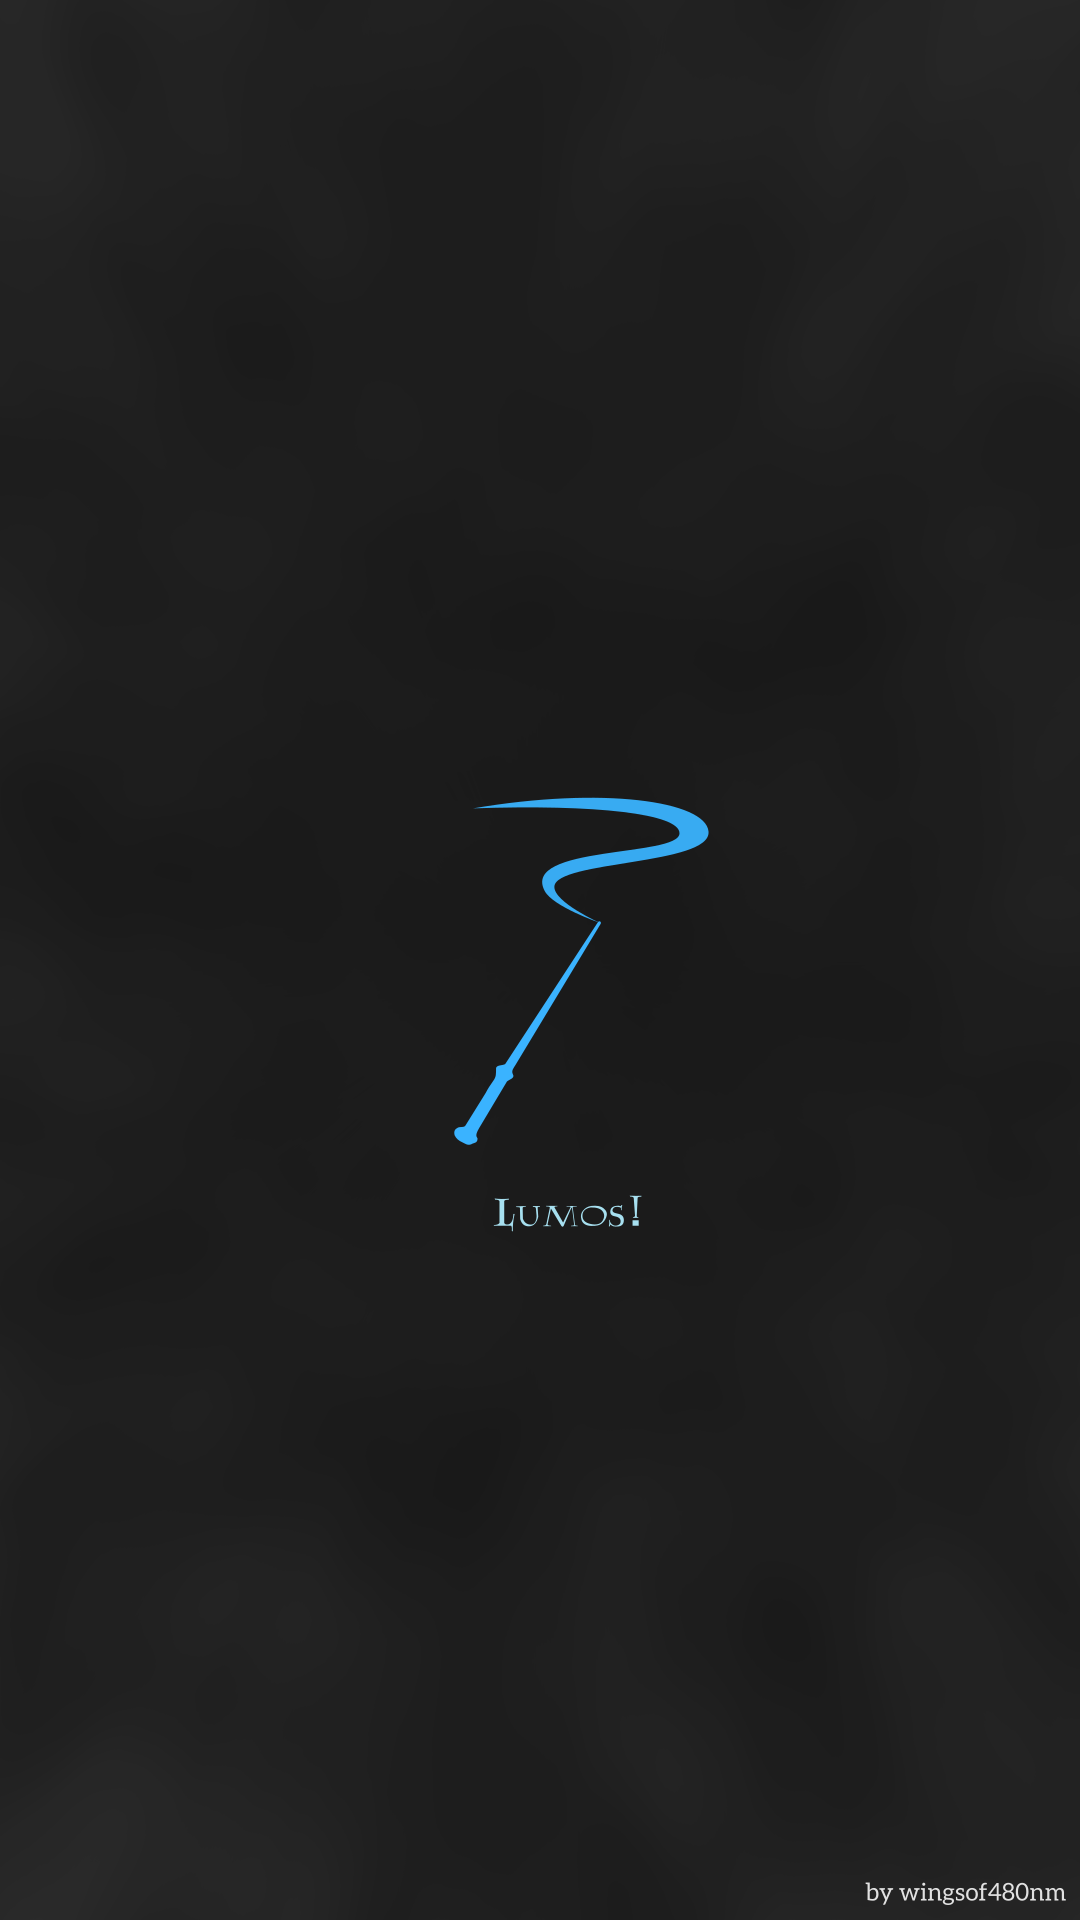 HP Minimalist Background-- Magic Wand by wingsof480nm on DeviantArt